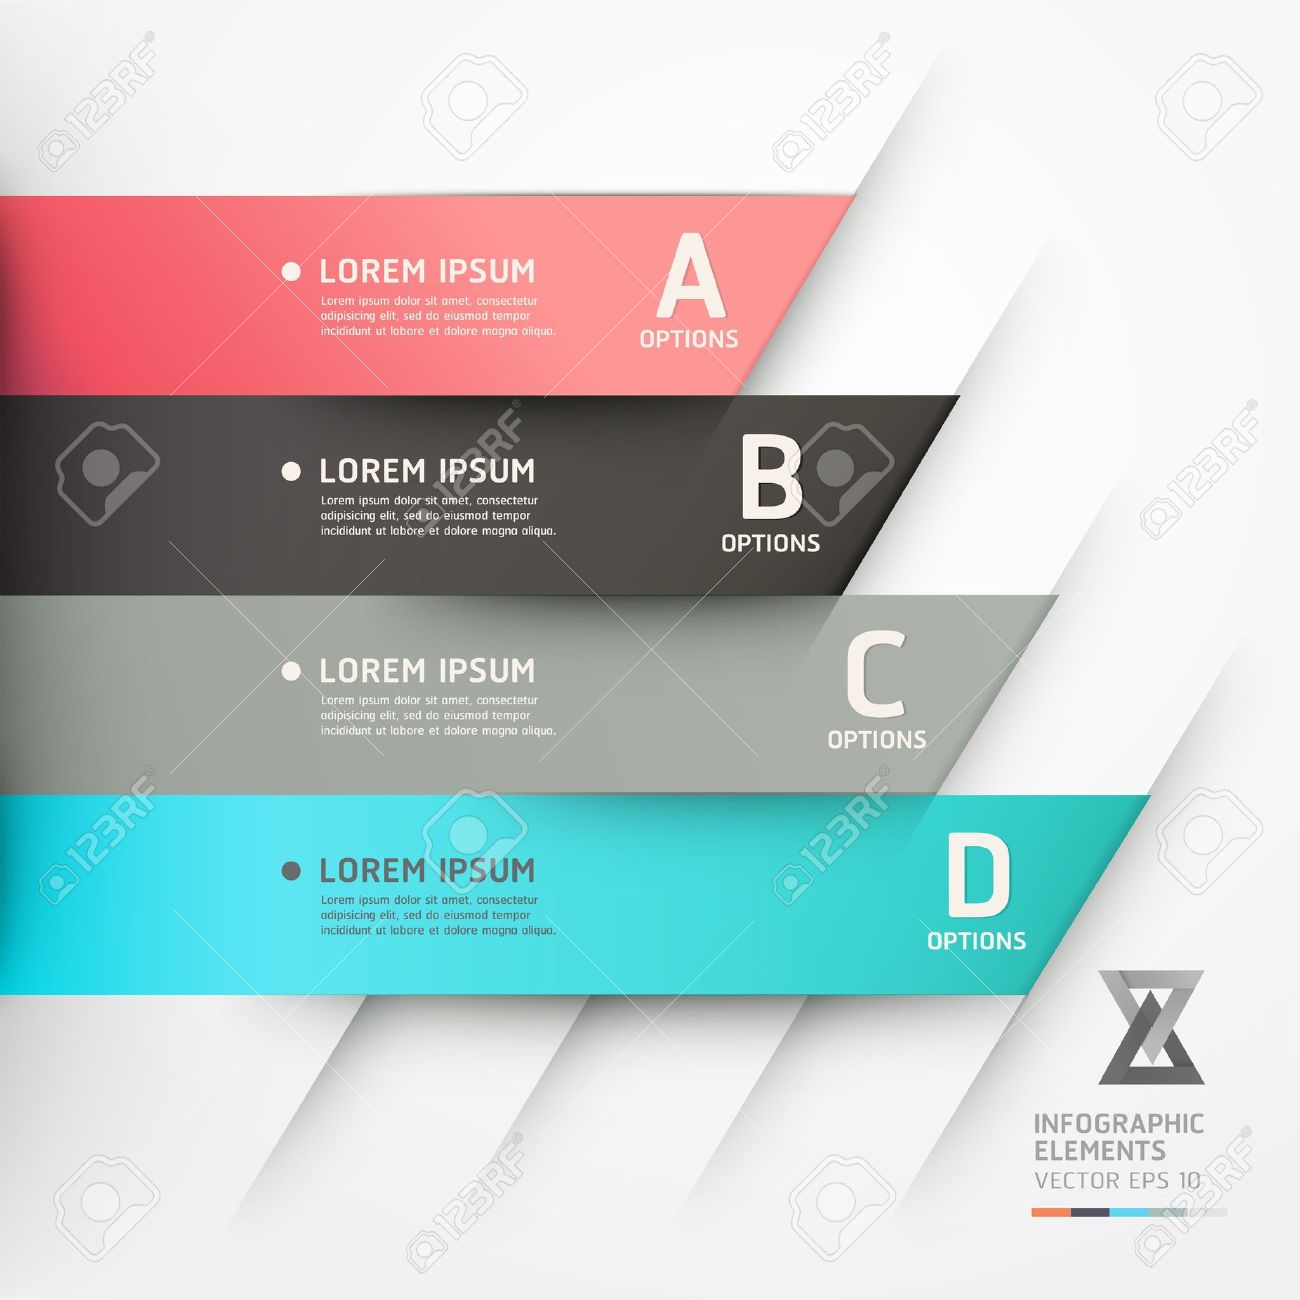 Modern origami style options banner  Vector illustration  can be used for workflow layout, diagram, number options, step up options, web design, infographics Stock Vector - 18311317